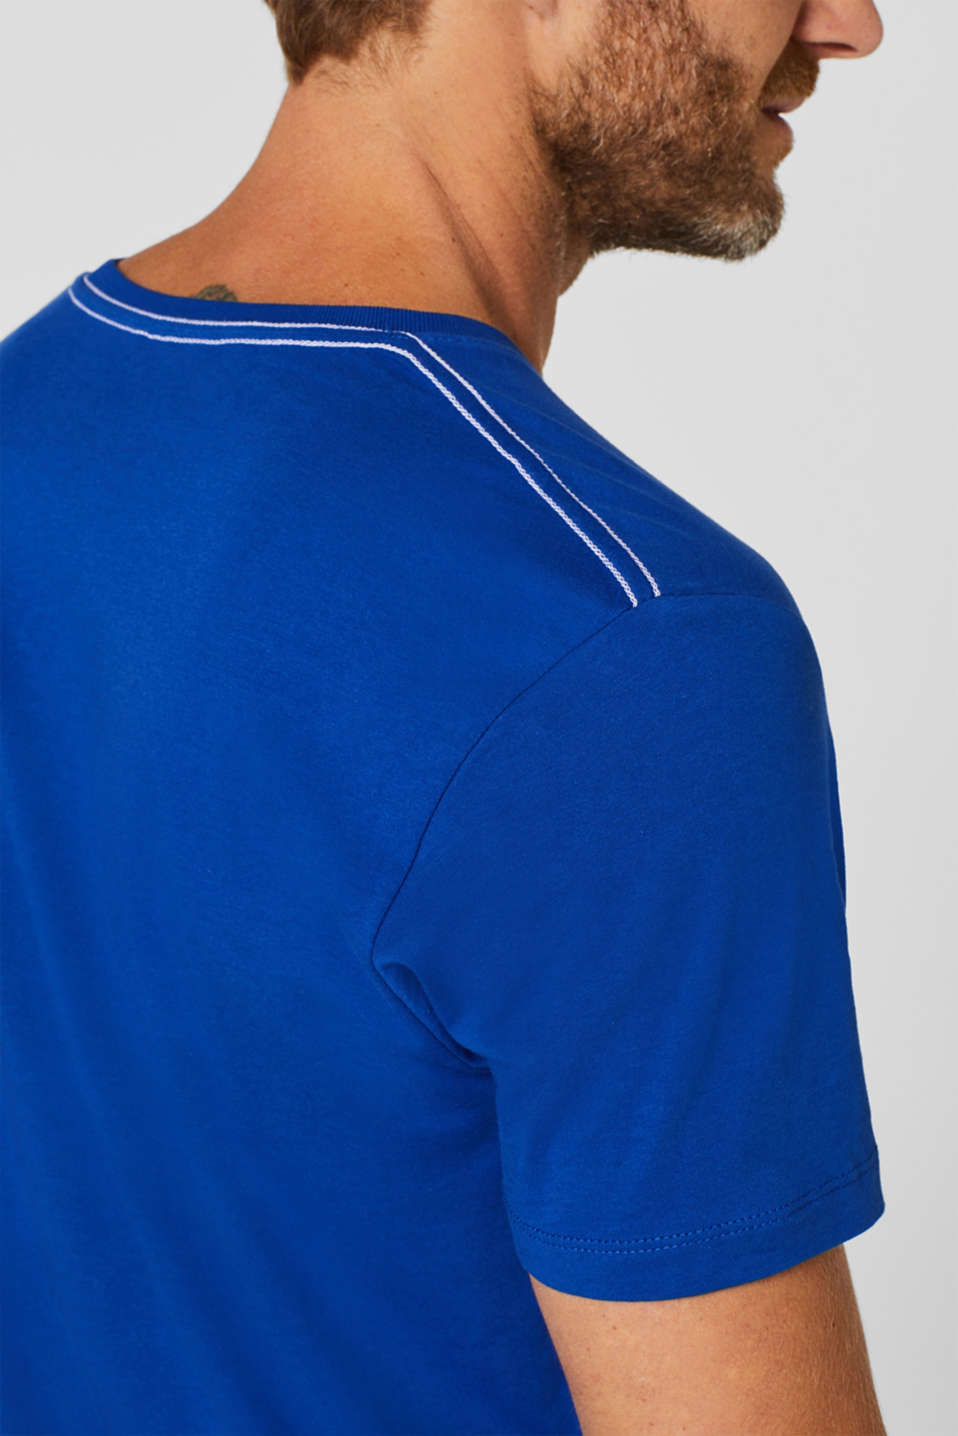 Jersey T-shirt with logo print, 100% cotton, BRIGHT BLUE, detail image number 1